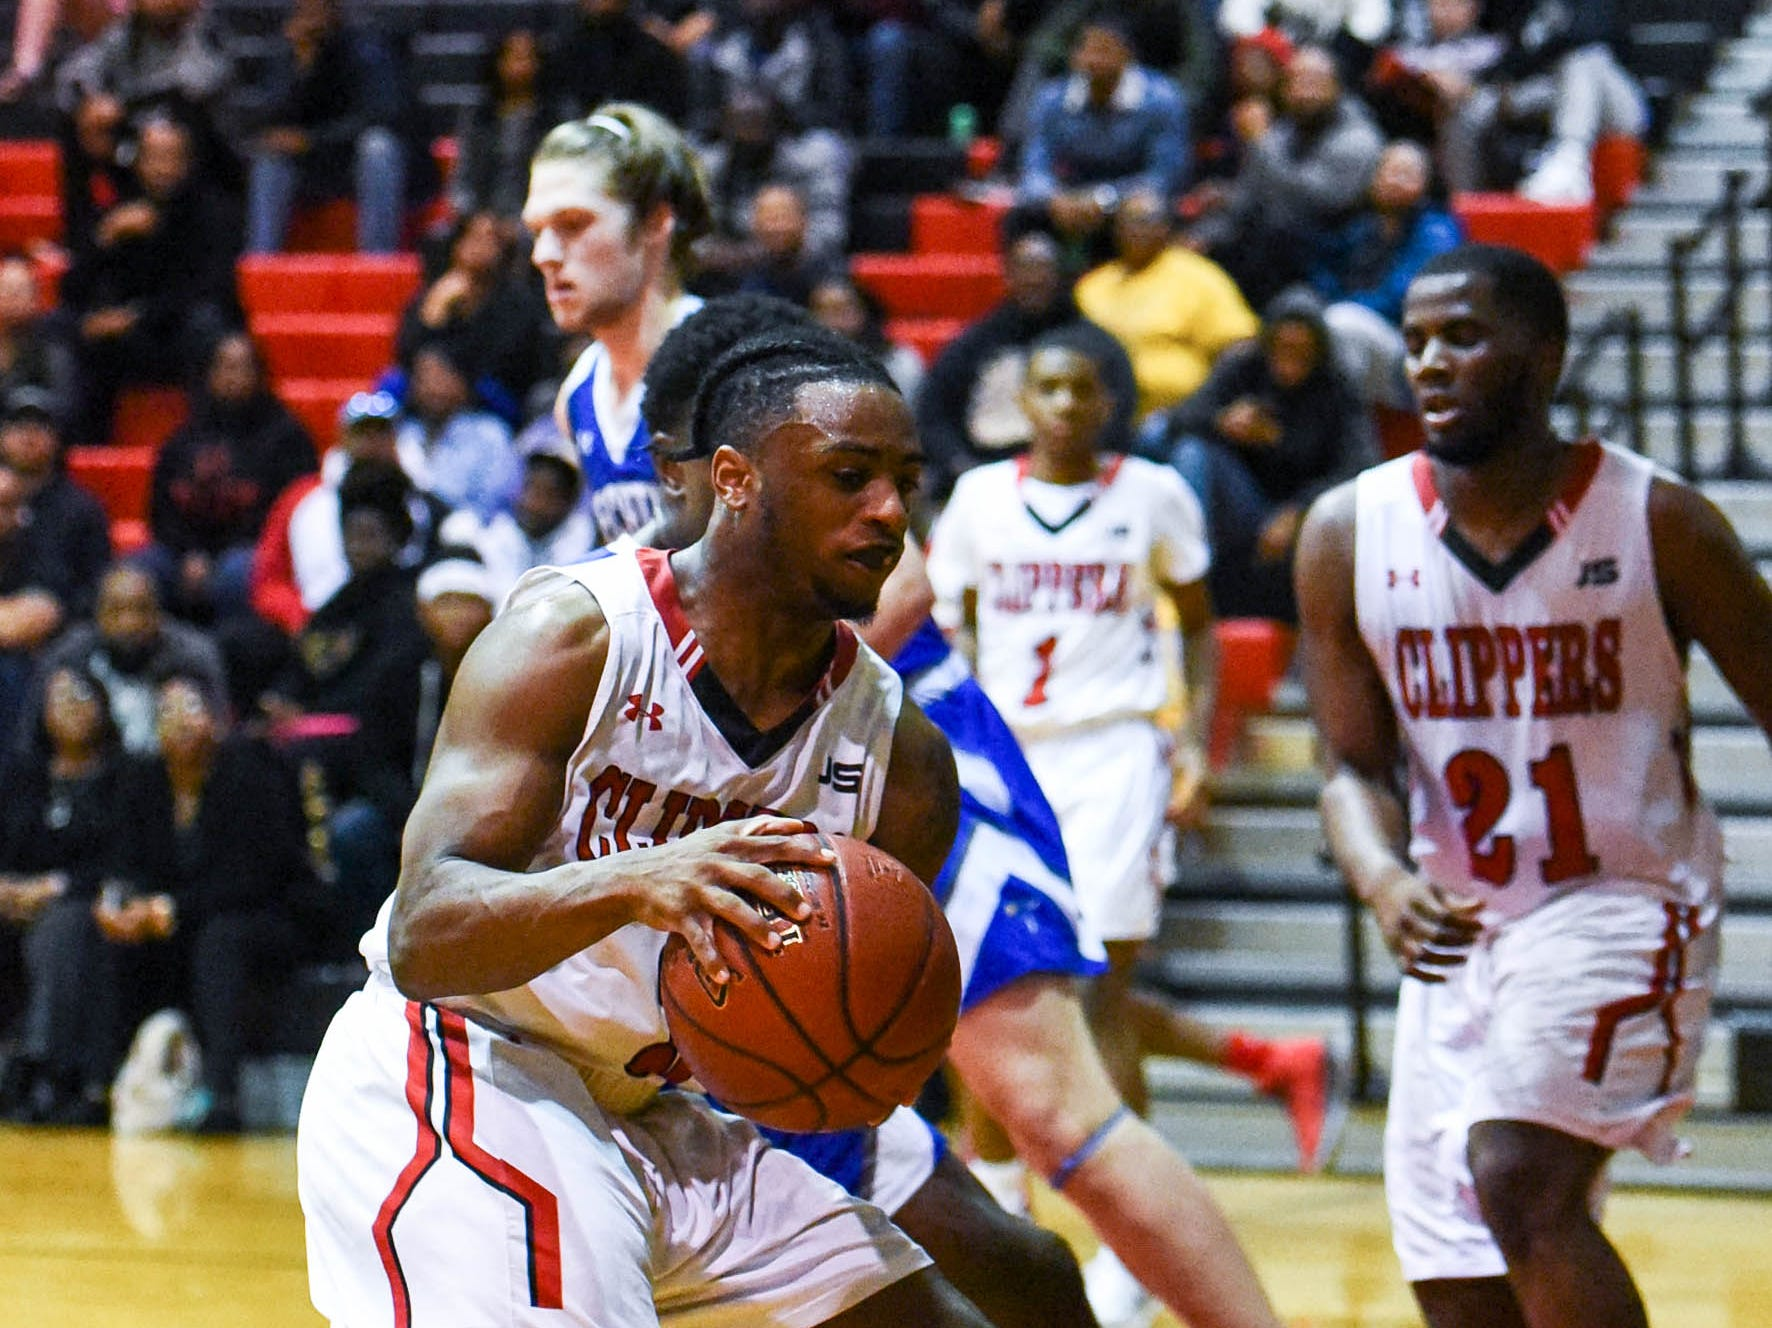 Bennett's Saquan Cotton (3) moves the ball during a game against Decatur at Bennett High School in Salisbury on Thursday, Jan 3, 2018.